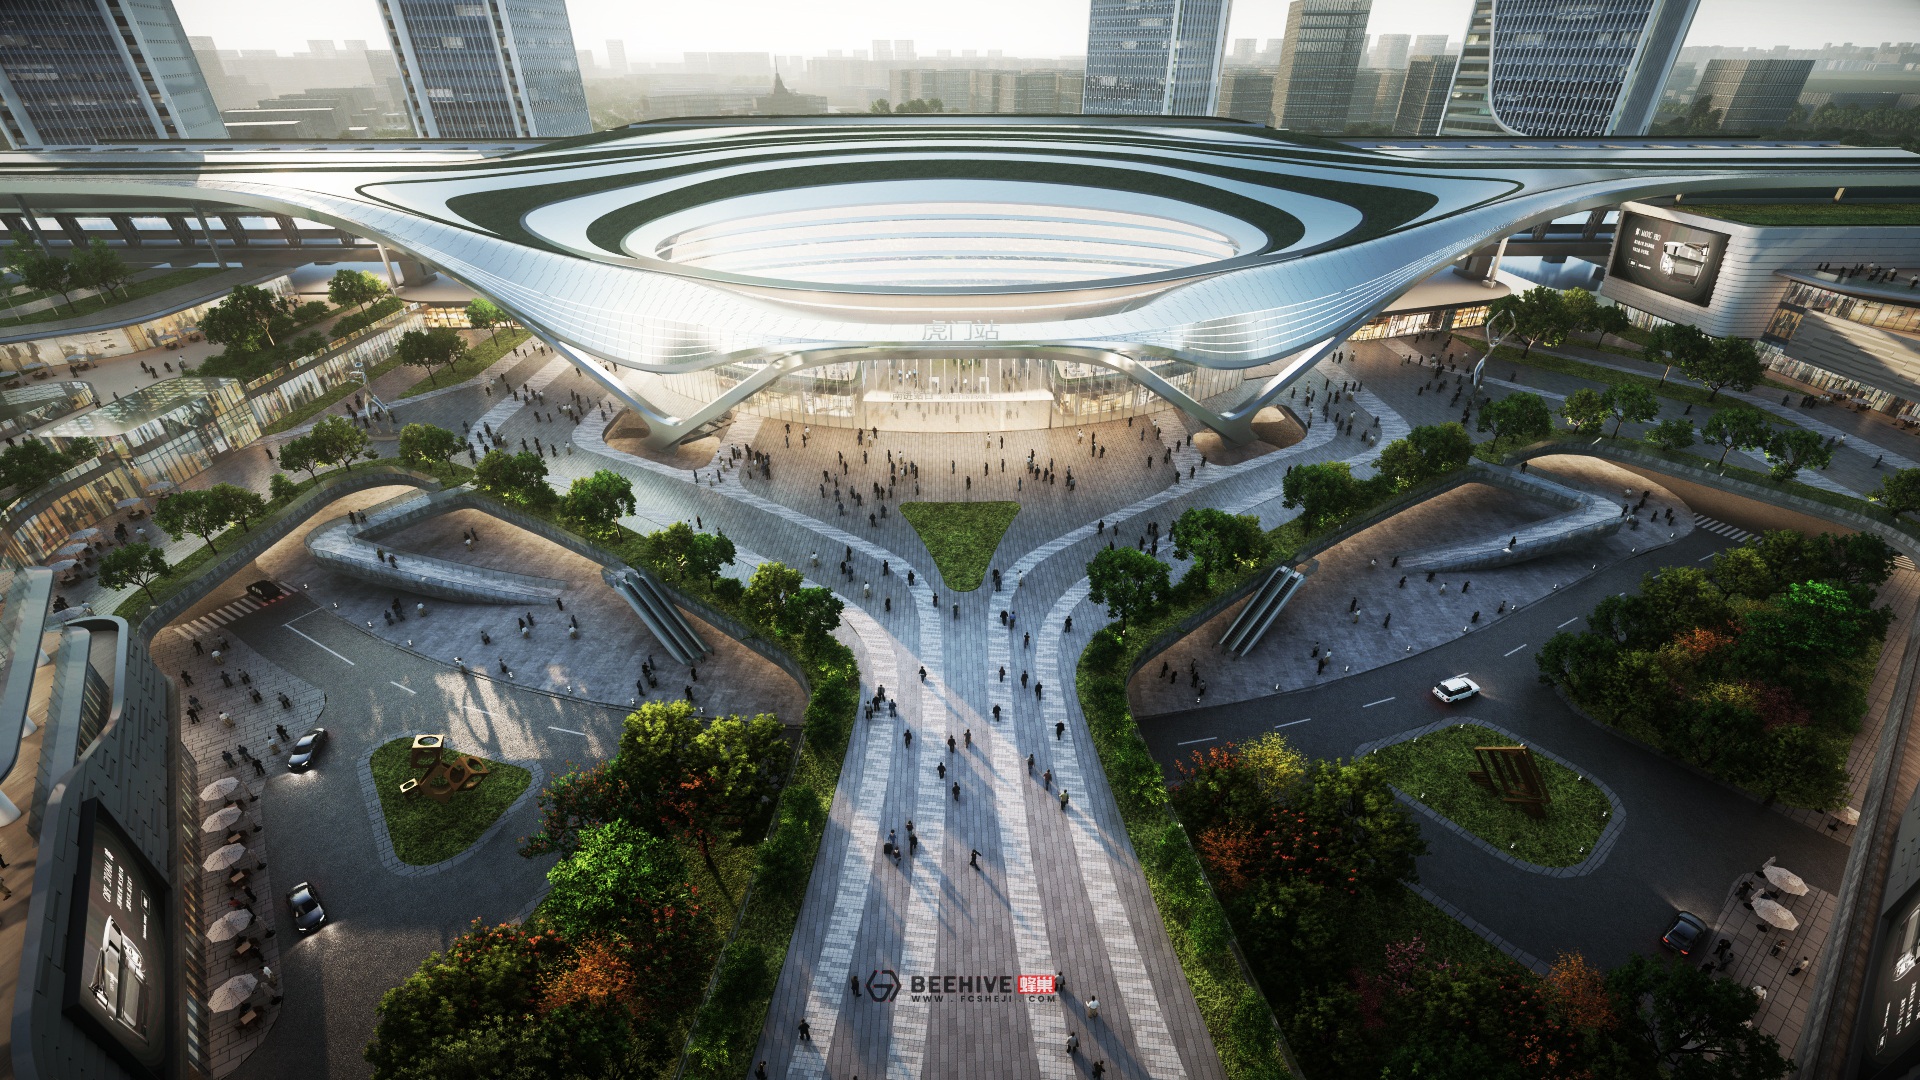 Humen High-Speed Rail Station Expansion Project Master Plan